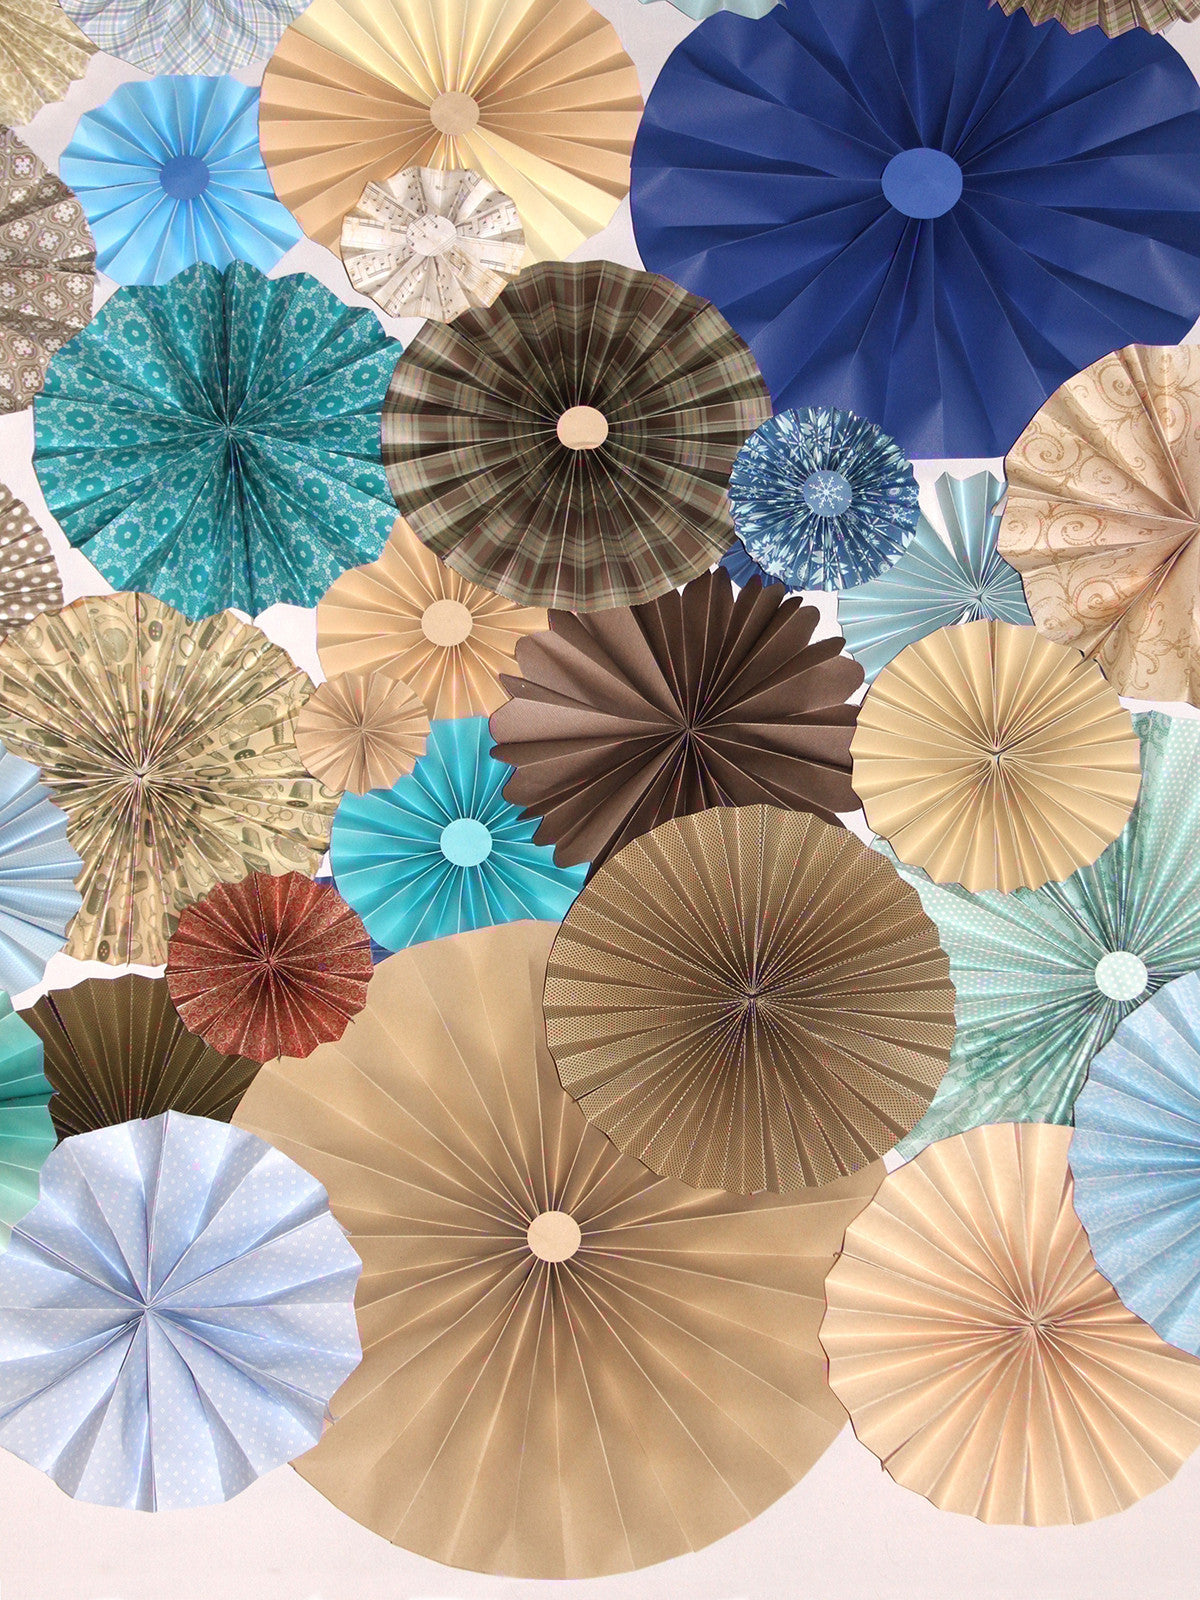 Earth and Sky Blue Pinwheels Backdrop Printed Photography Backdrop / 9653 - DropPlace